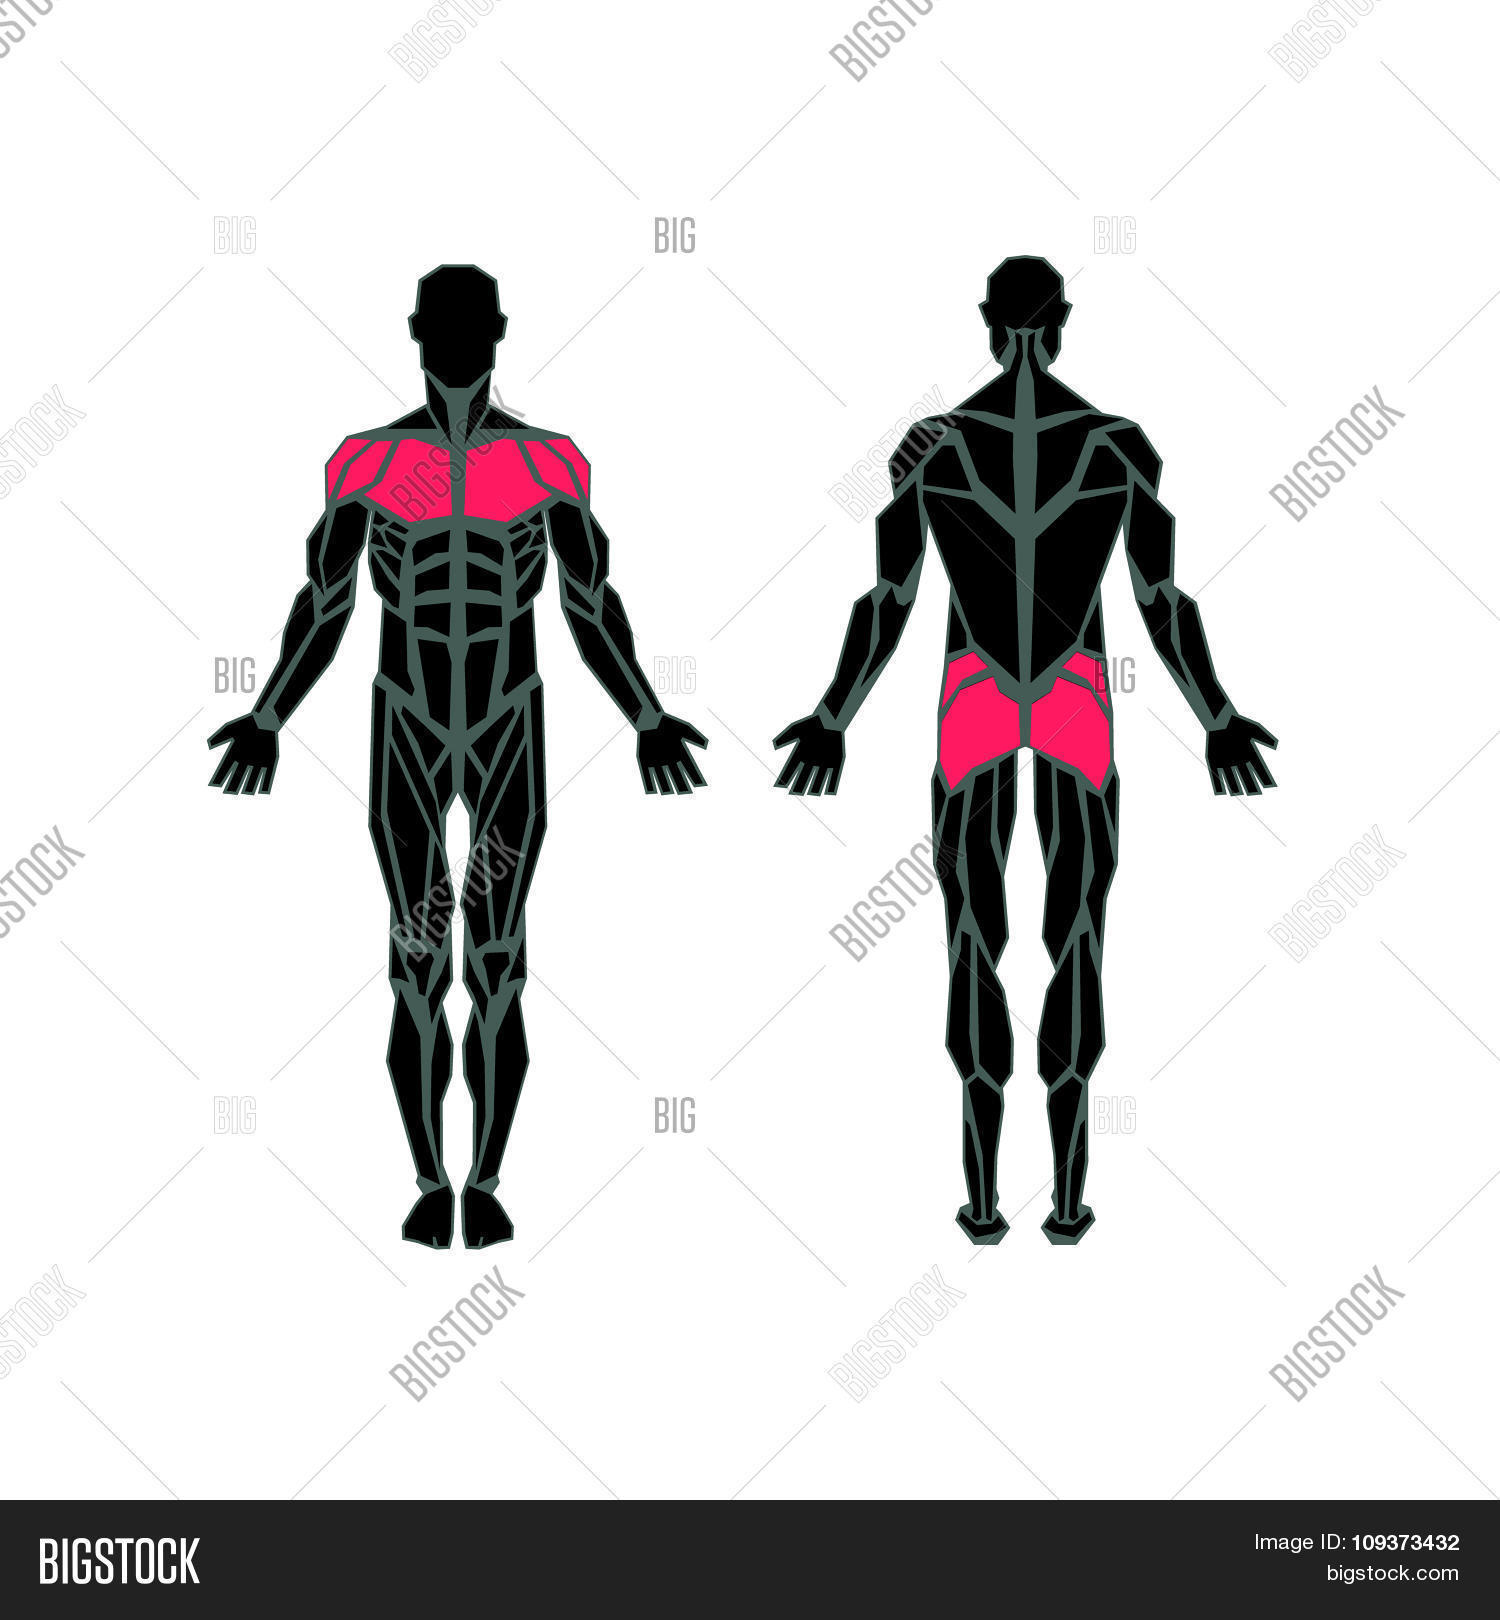 Polygonal anatomy vector photo free trial bigstock polygonal anatomy of male muscular system exercise and muscle guide human muscular vector art ccuart Images